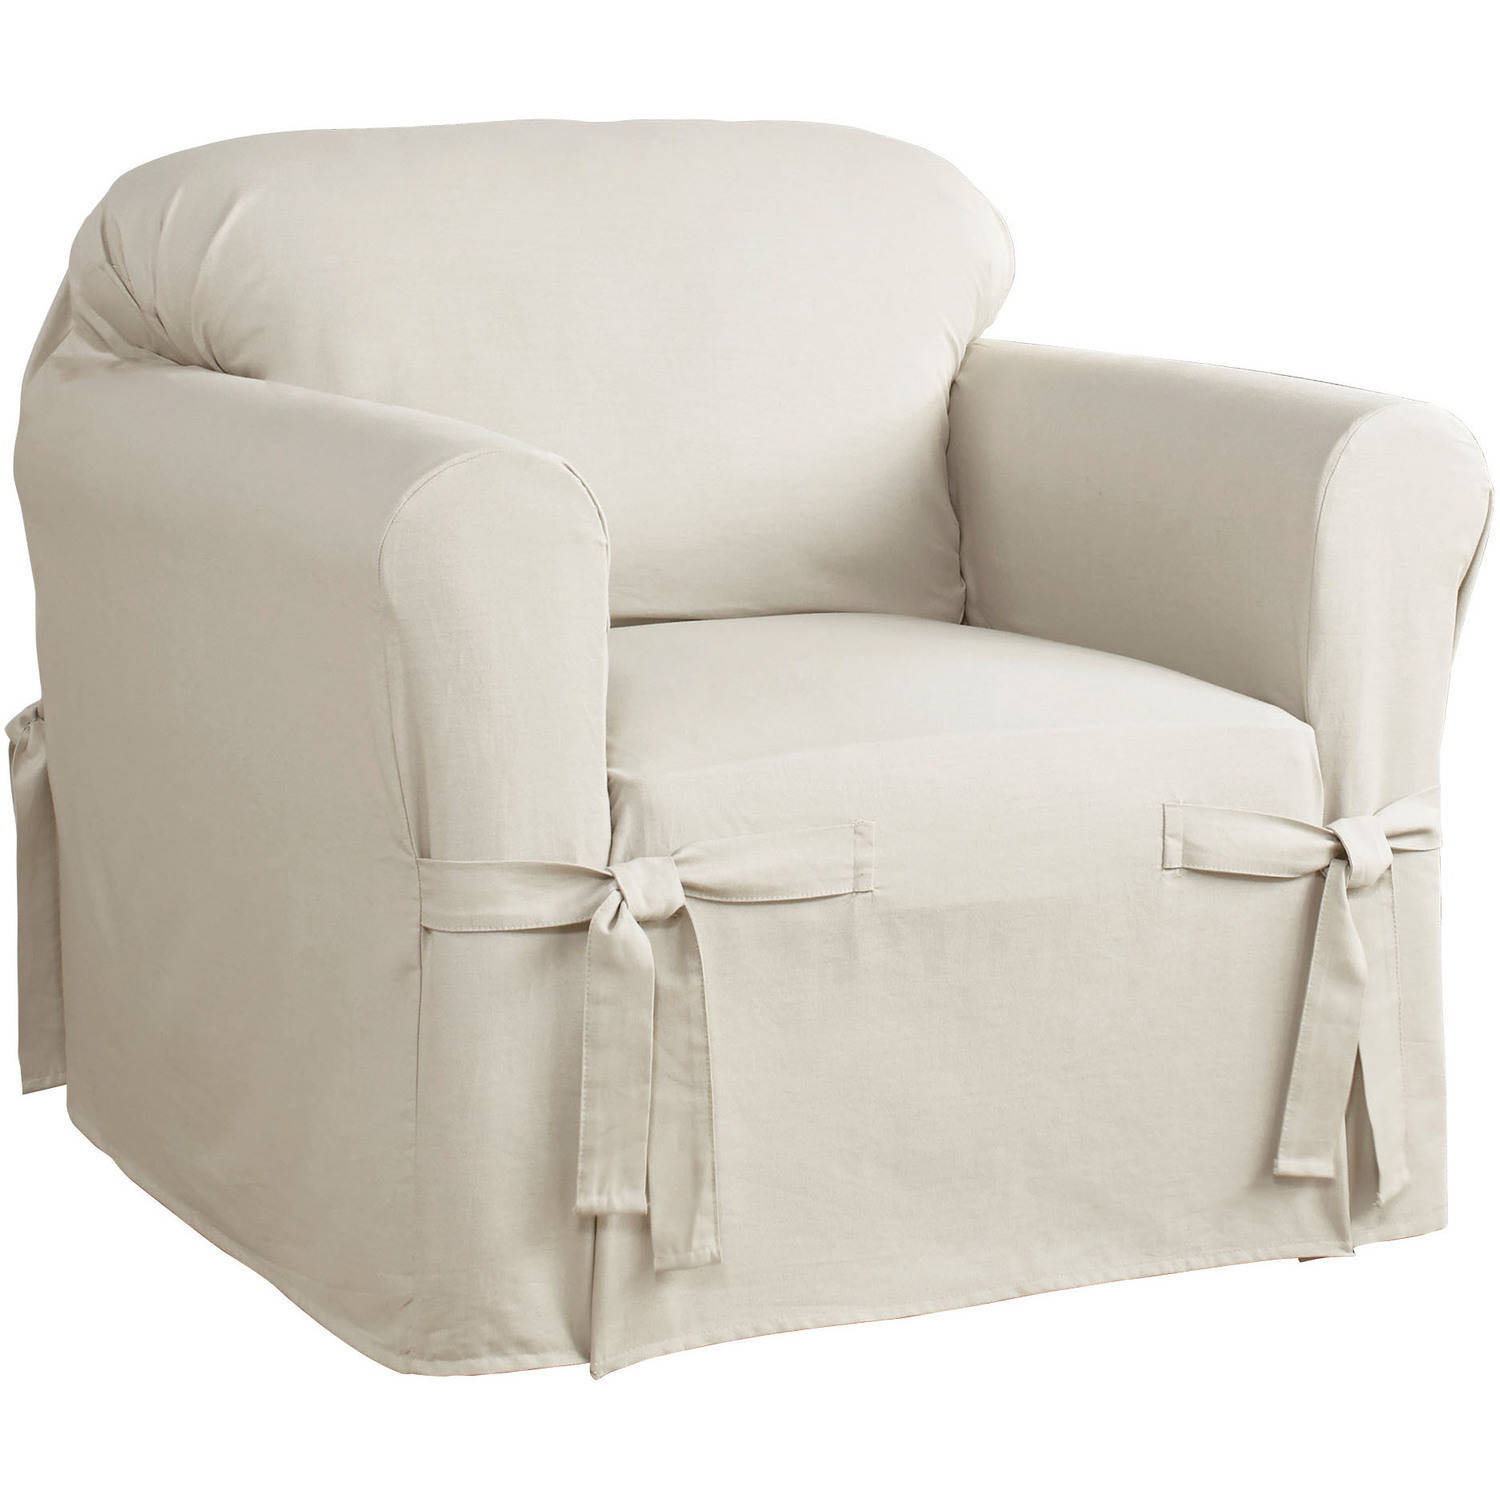 Fitted Slipcovers Couches Serta Relaxed Fit Cotton Duck Furniture Slipcover Chair 1 Piece Box Cushion